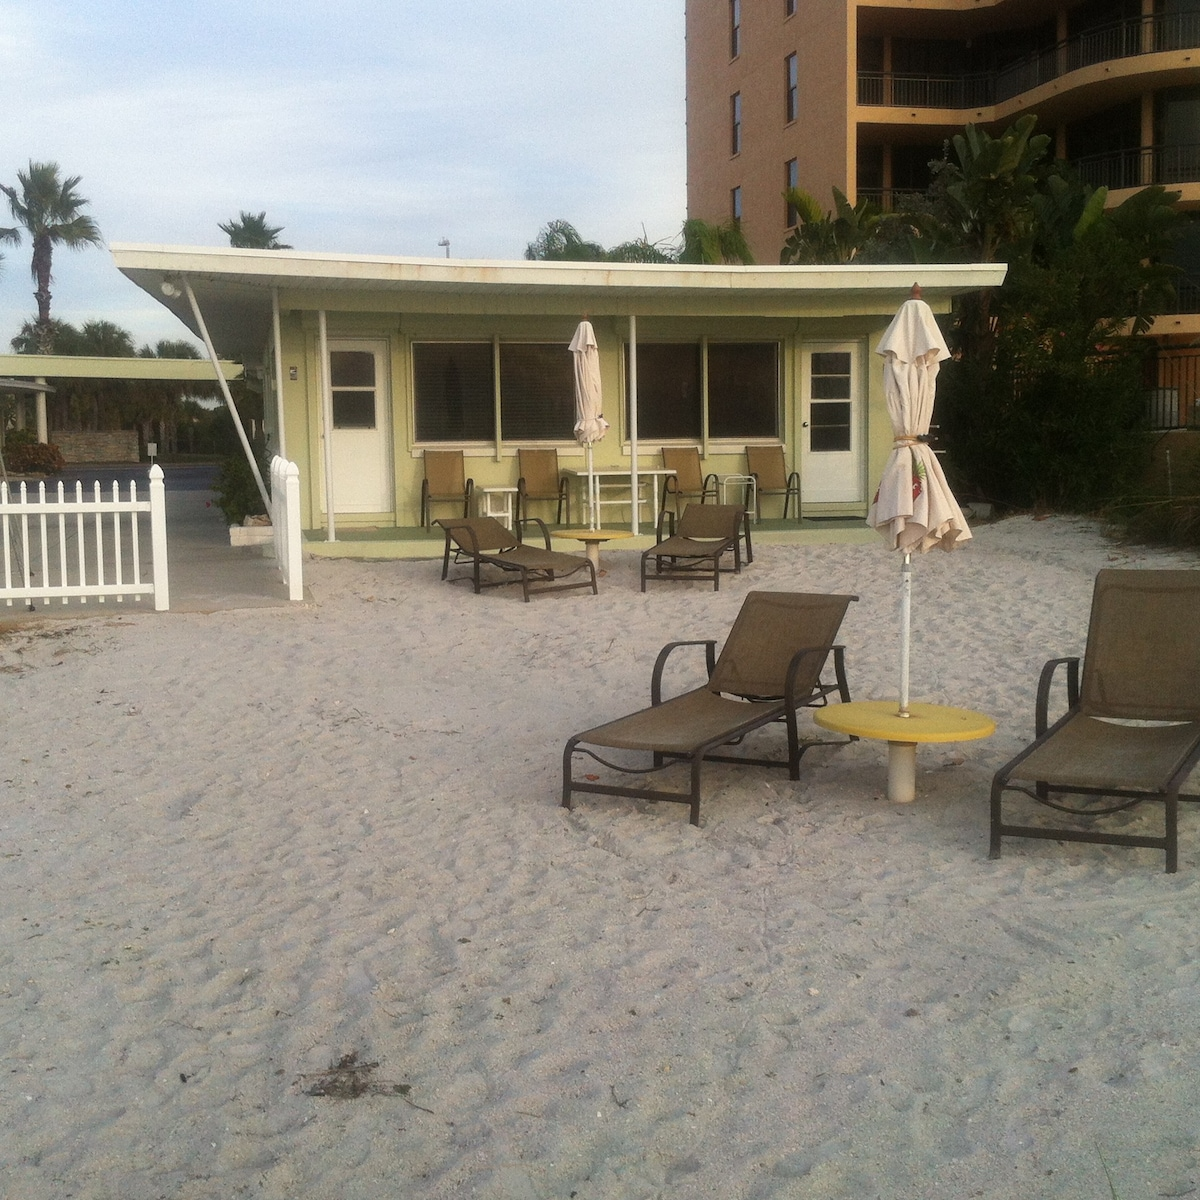 ground floor direct beachfront cottage cottages for rent in rh airbnb com beachfront cottages for rent near me beachfront cottages for rent in florida